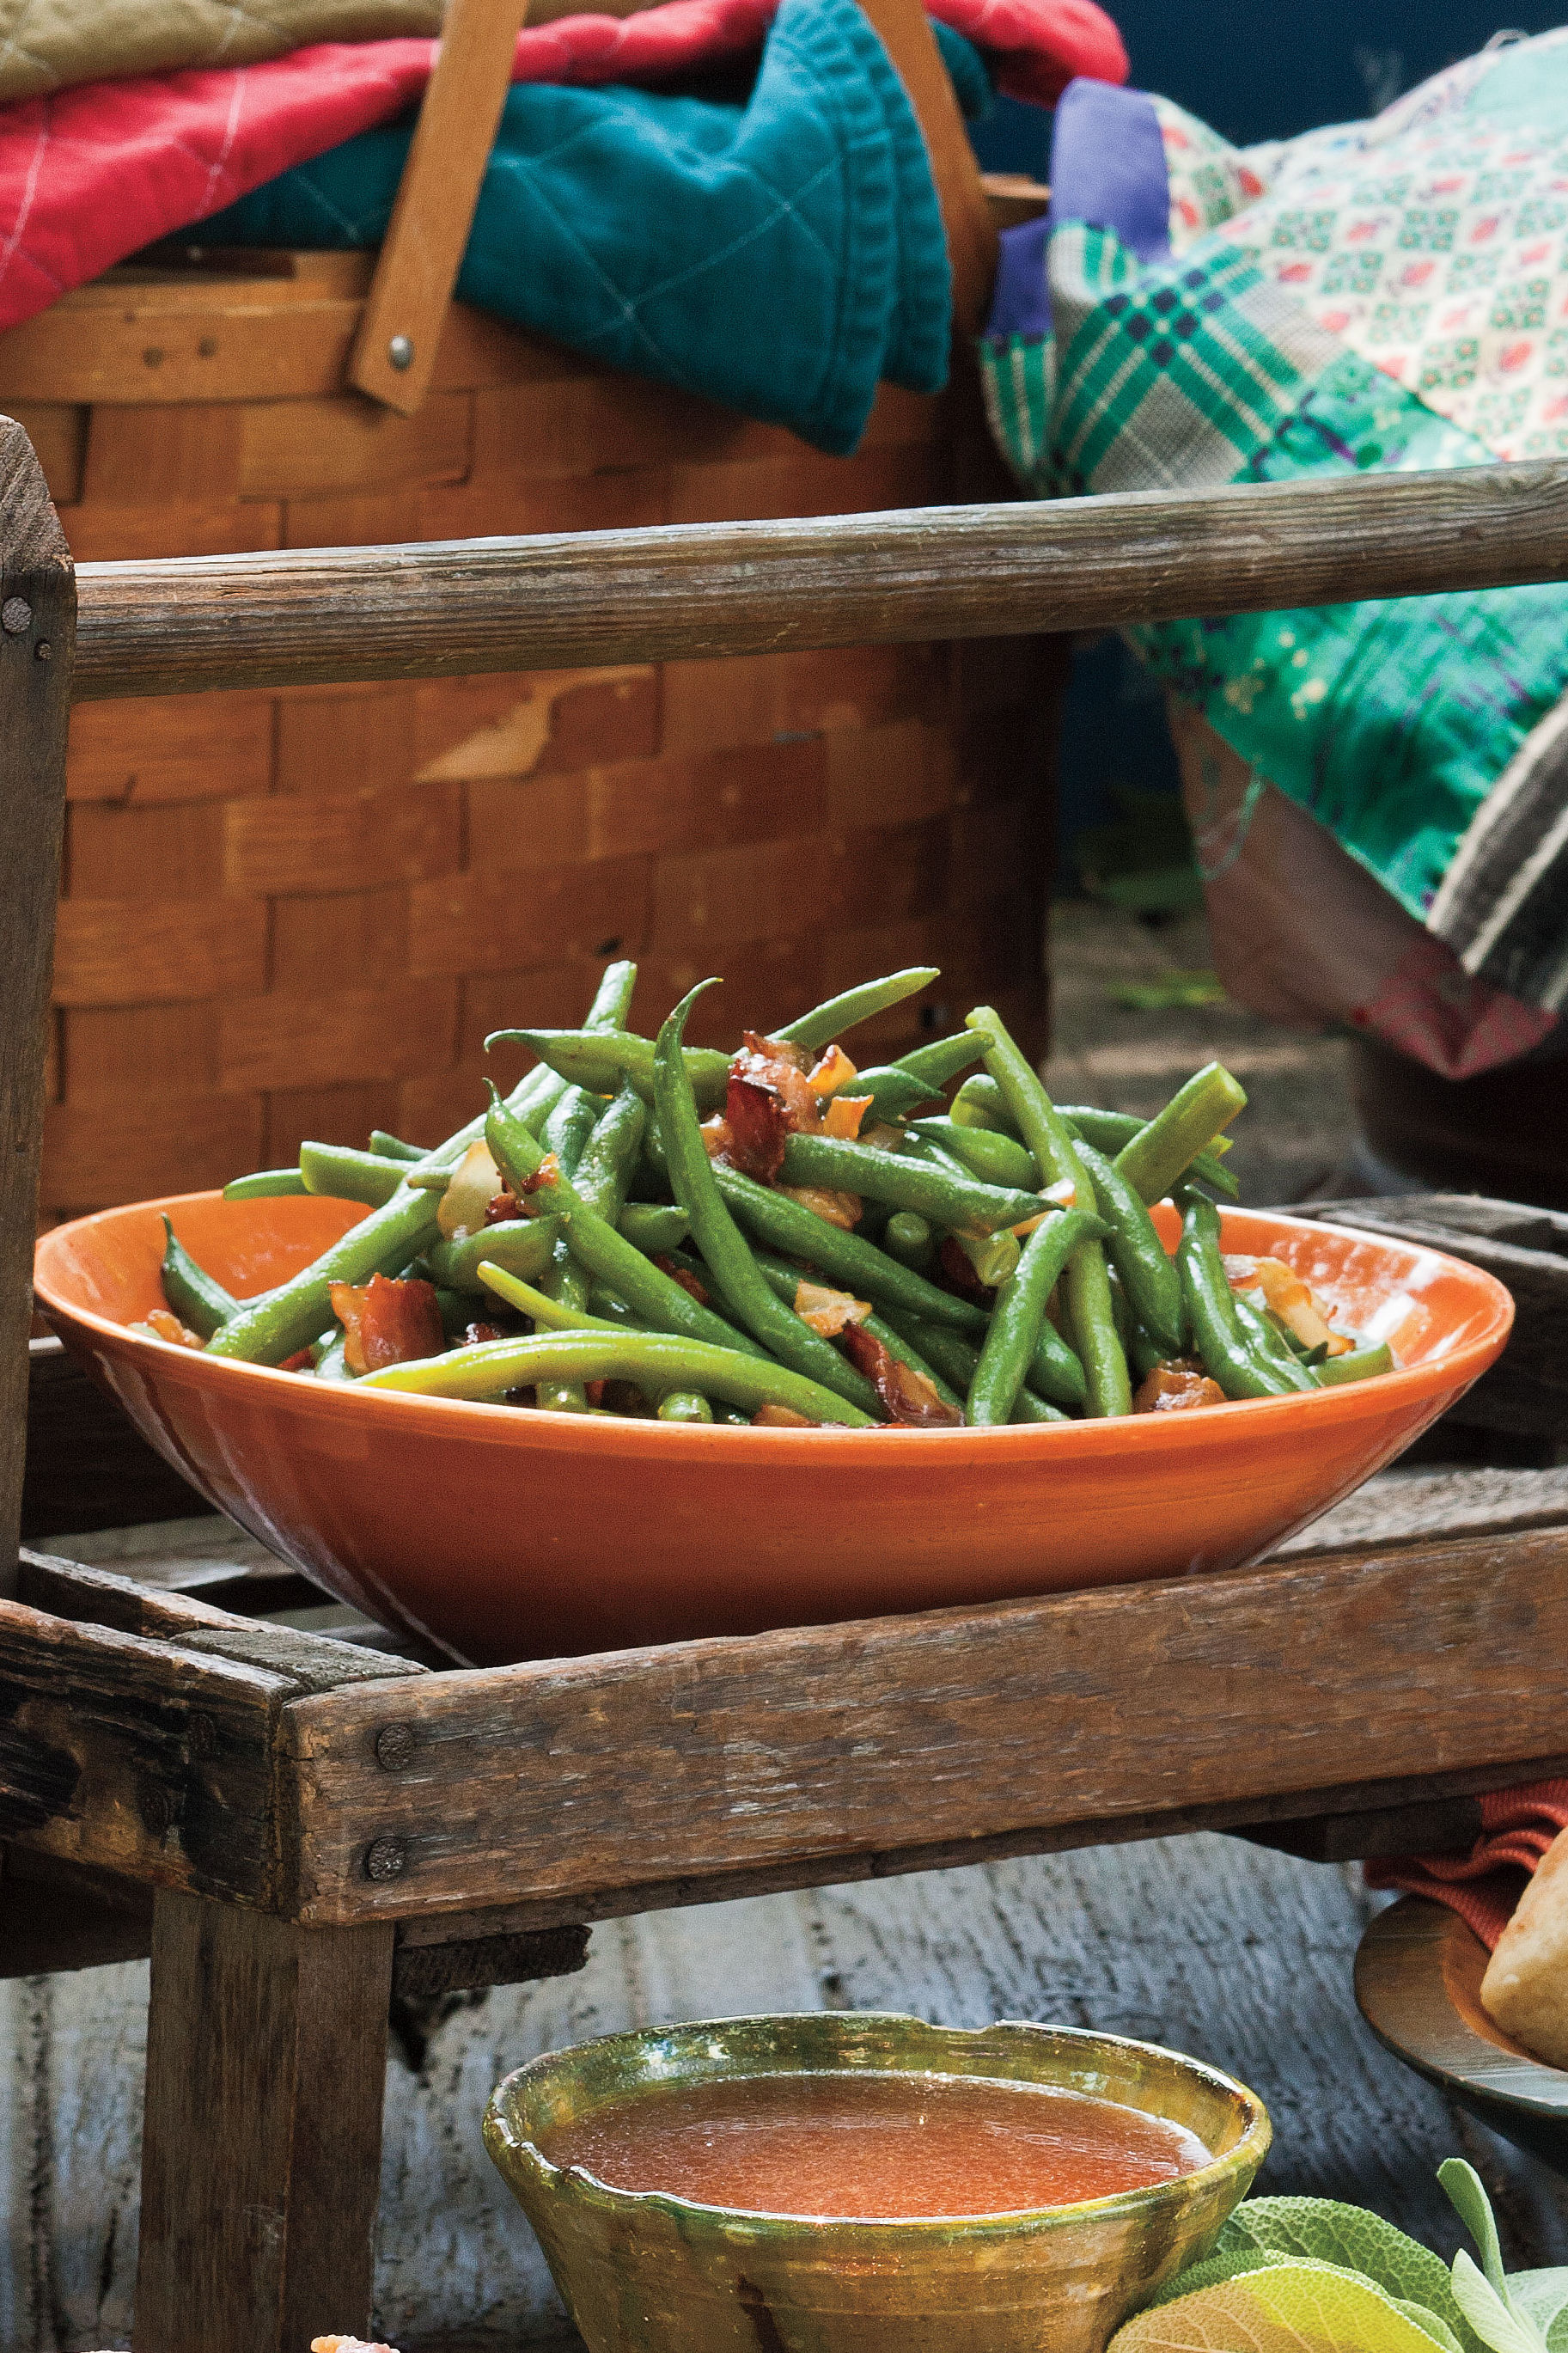 Sweet-and-Sour Green Beans Might Sound Weird, But They're Absolutely Delicious